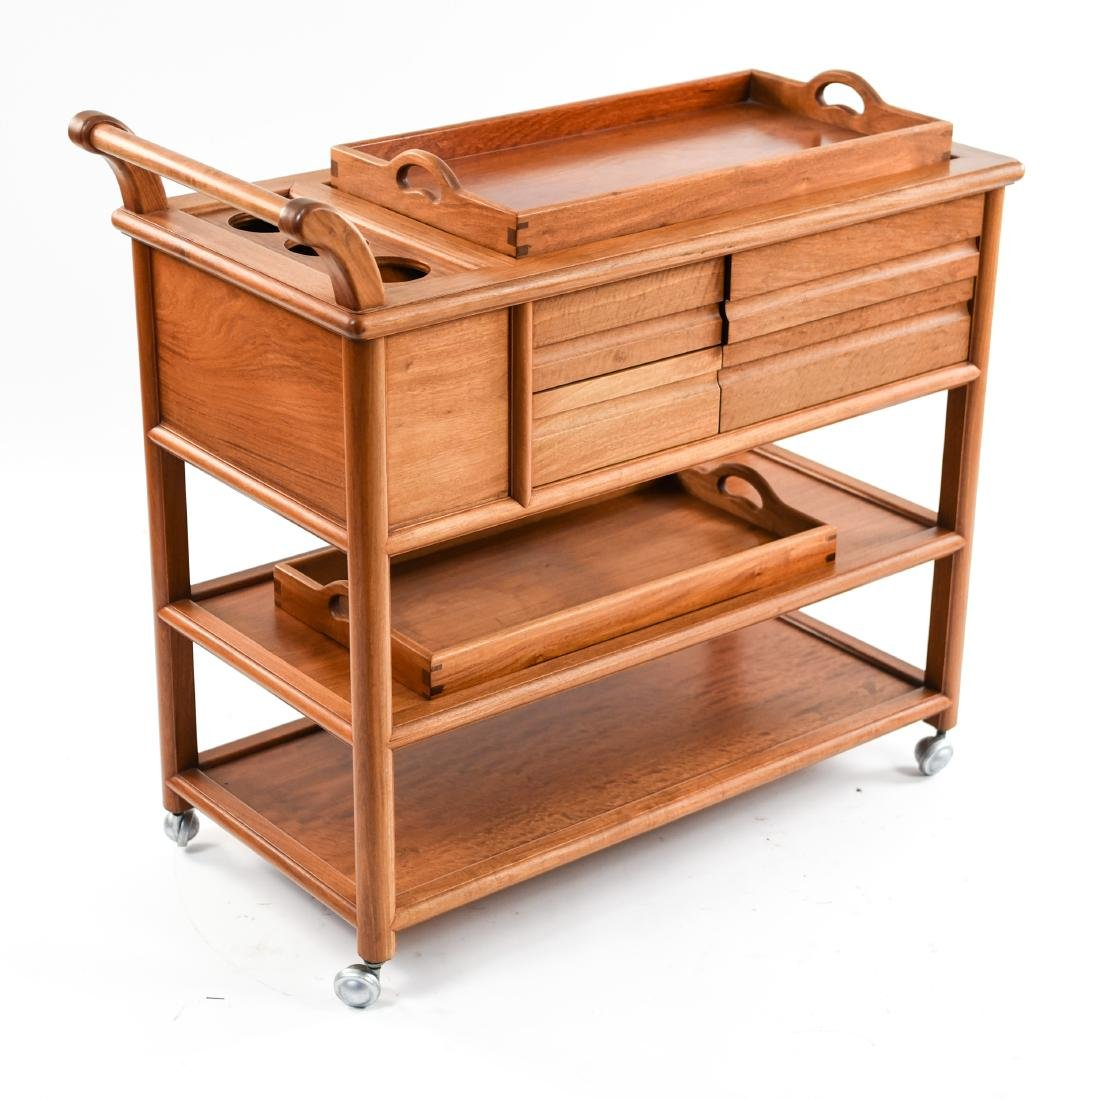 CONTEMPORARY WOODEN BAR CART - 7